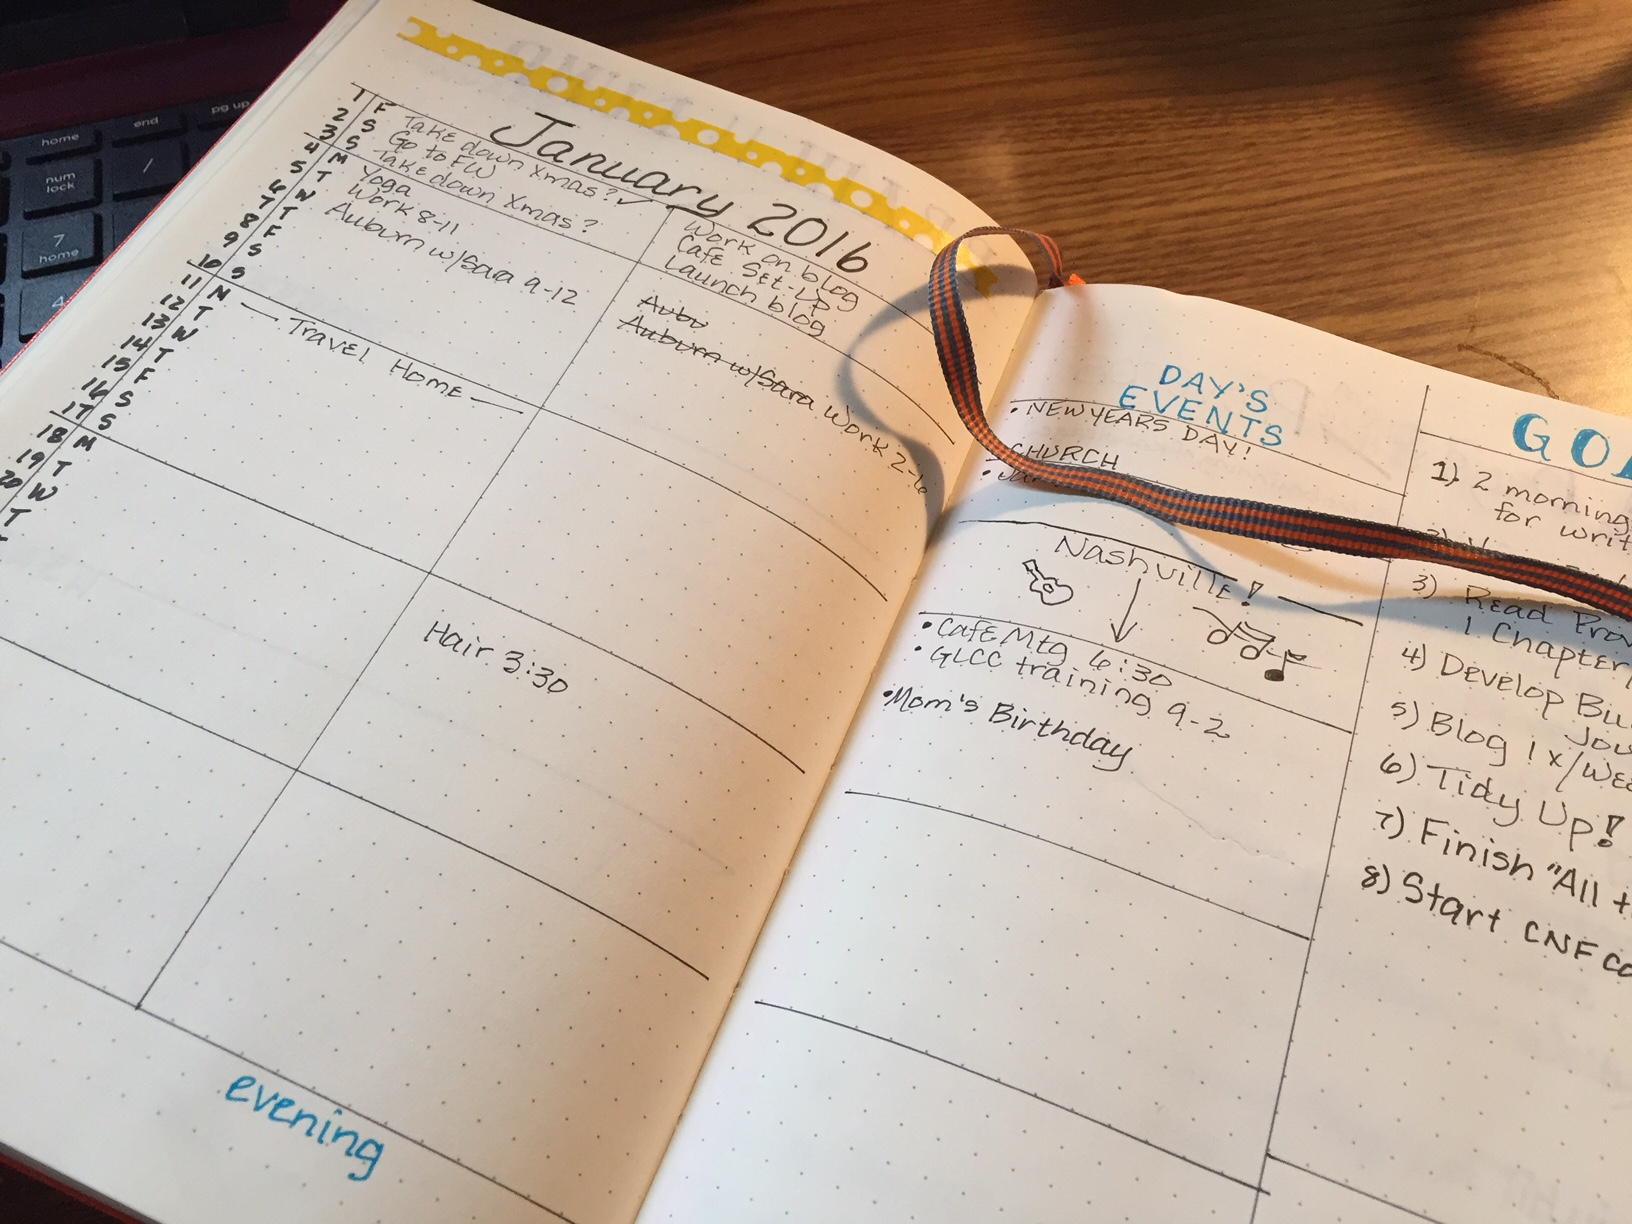 Exercising My Creativity with a Bullet Journal (and Getting Organized in the Process)